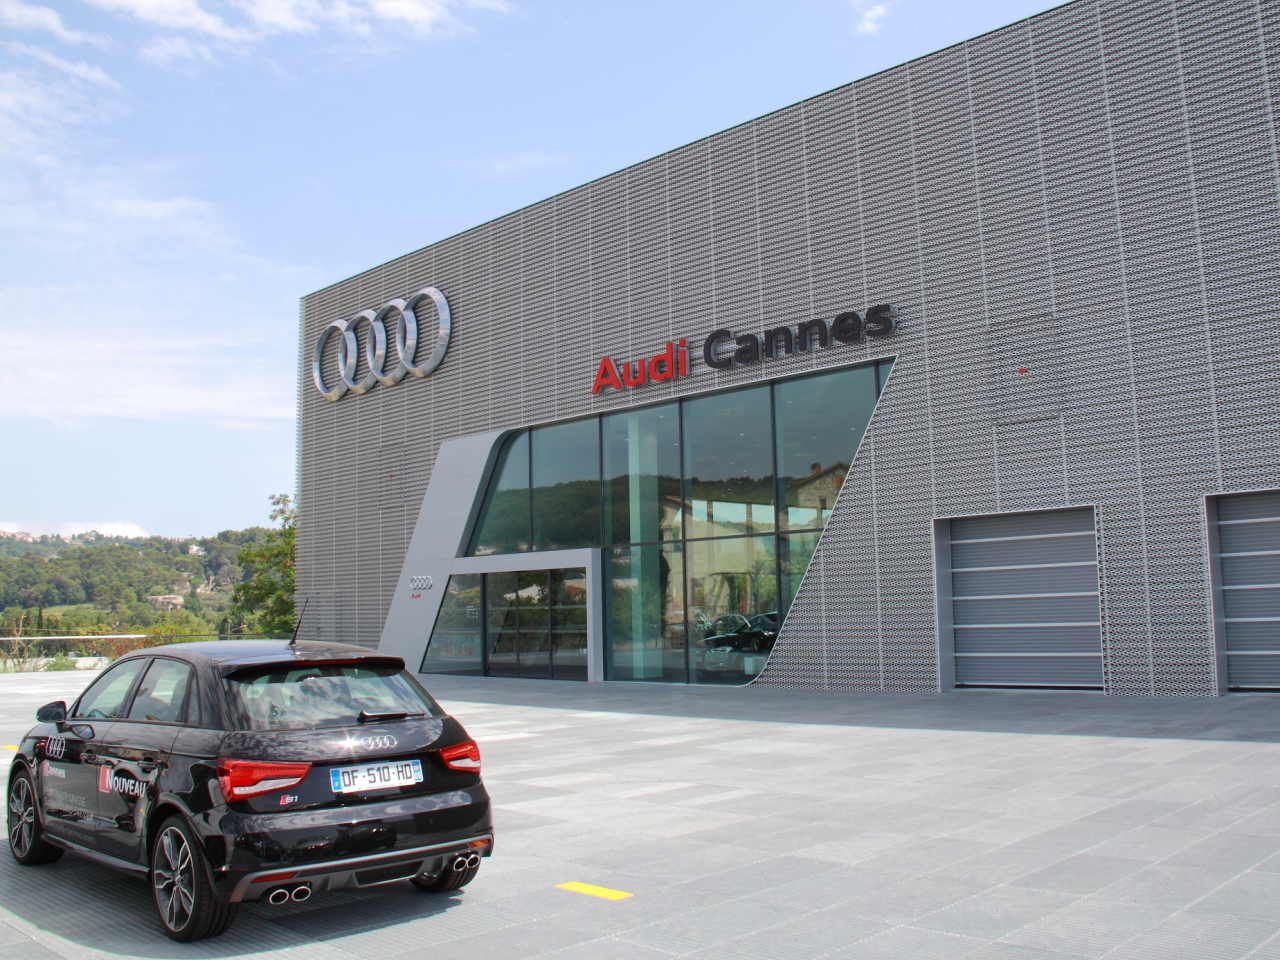 pr sentation de la soci t audi cannes. Black Bedroom Furniture Sets. Home Design Ideas